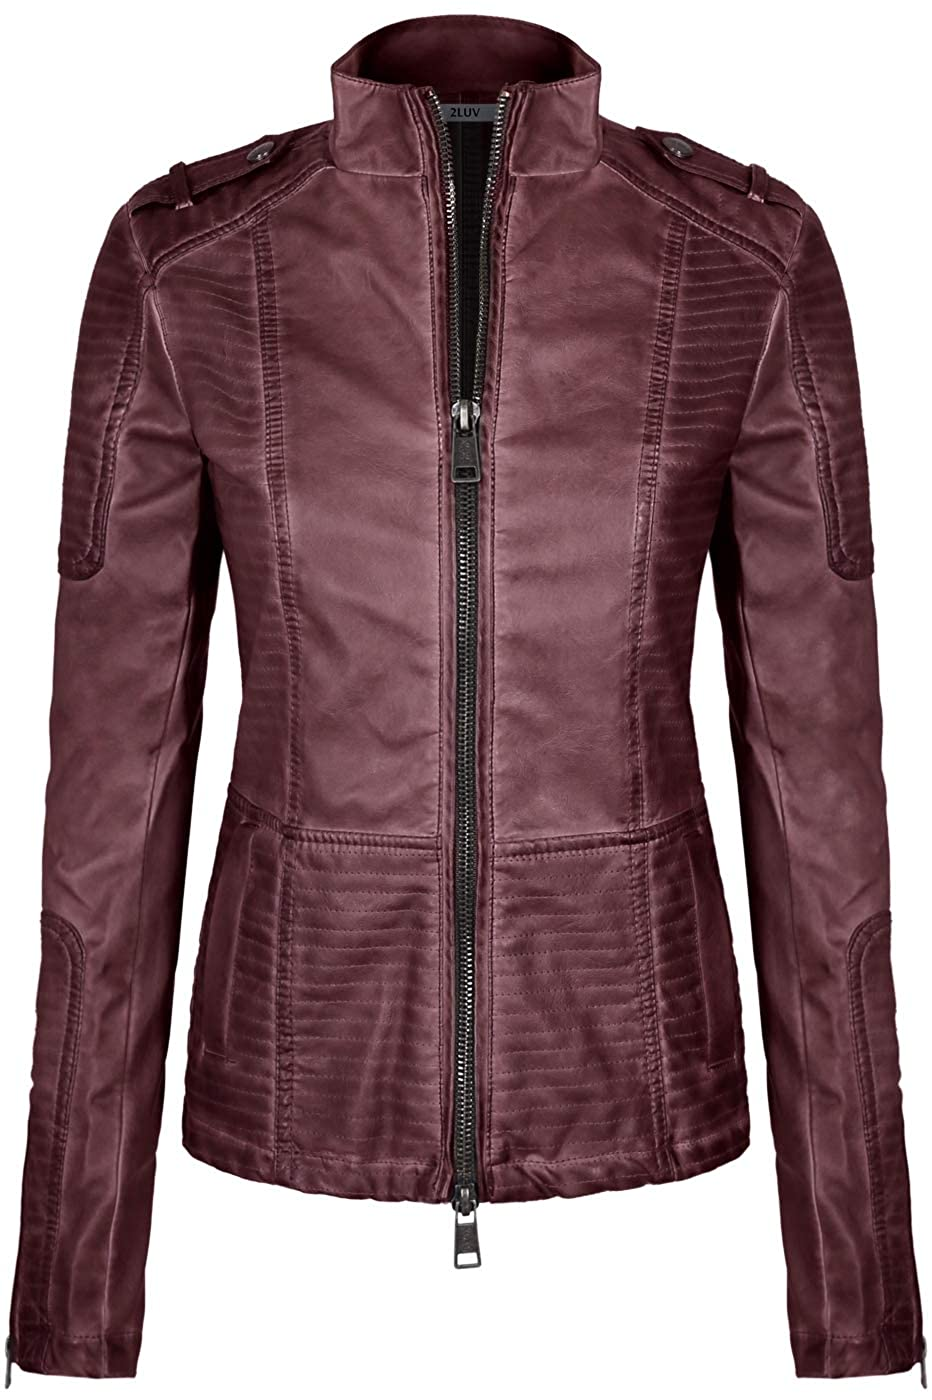 2LUV Women's Slim Tailoring Faux Leather Zipper Moto Biker PU Bomber Jacket